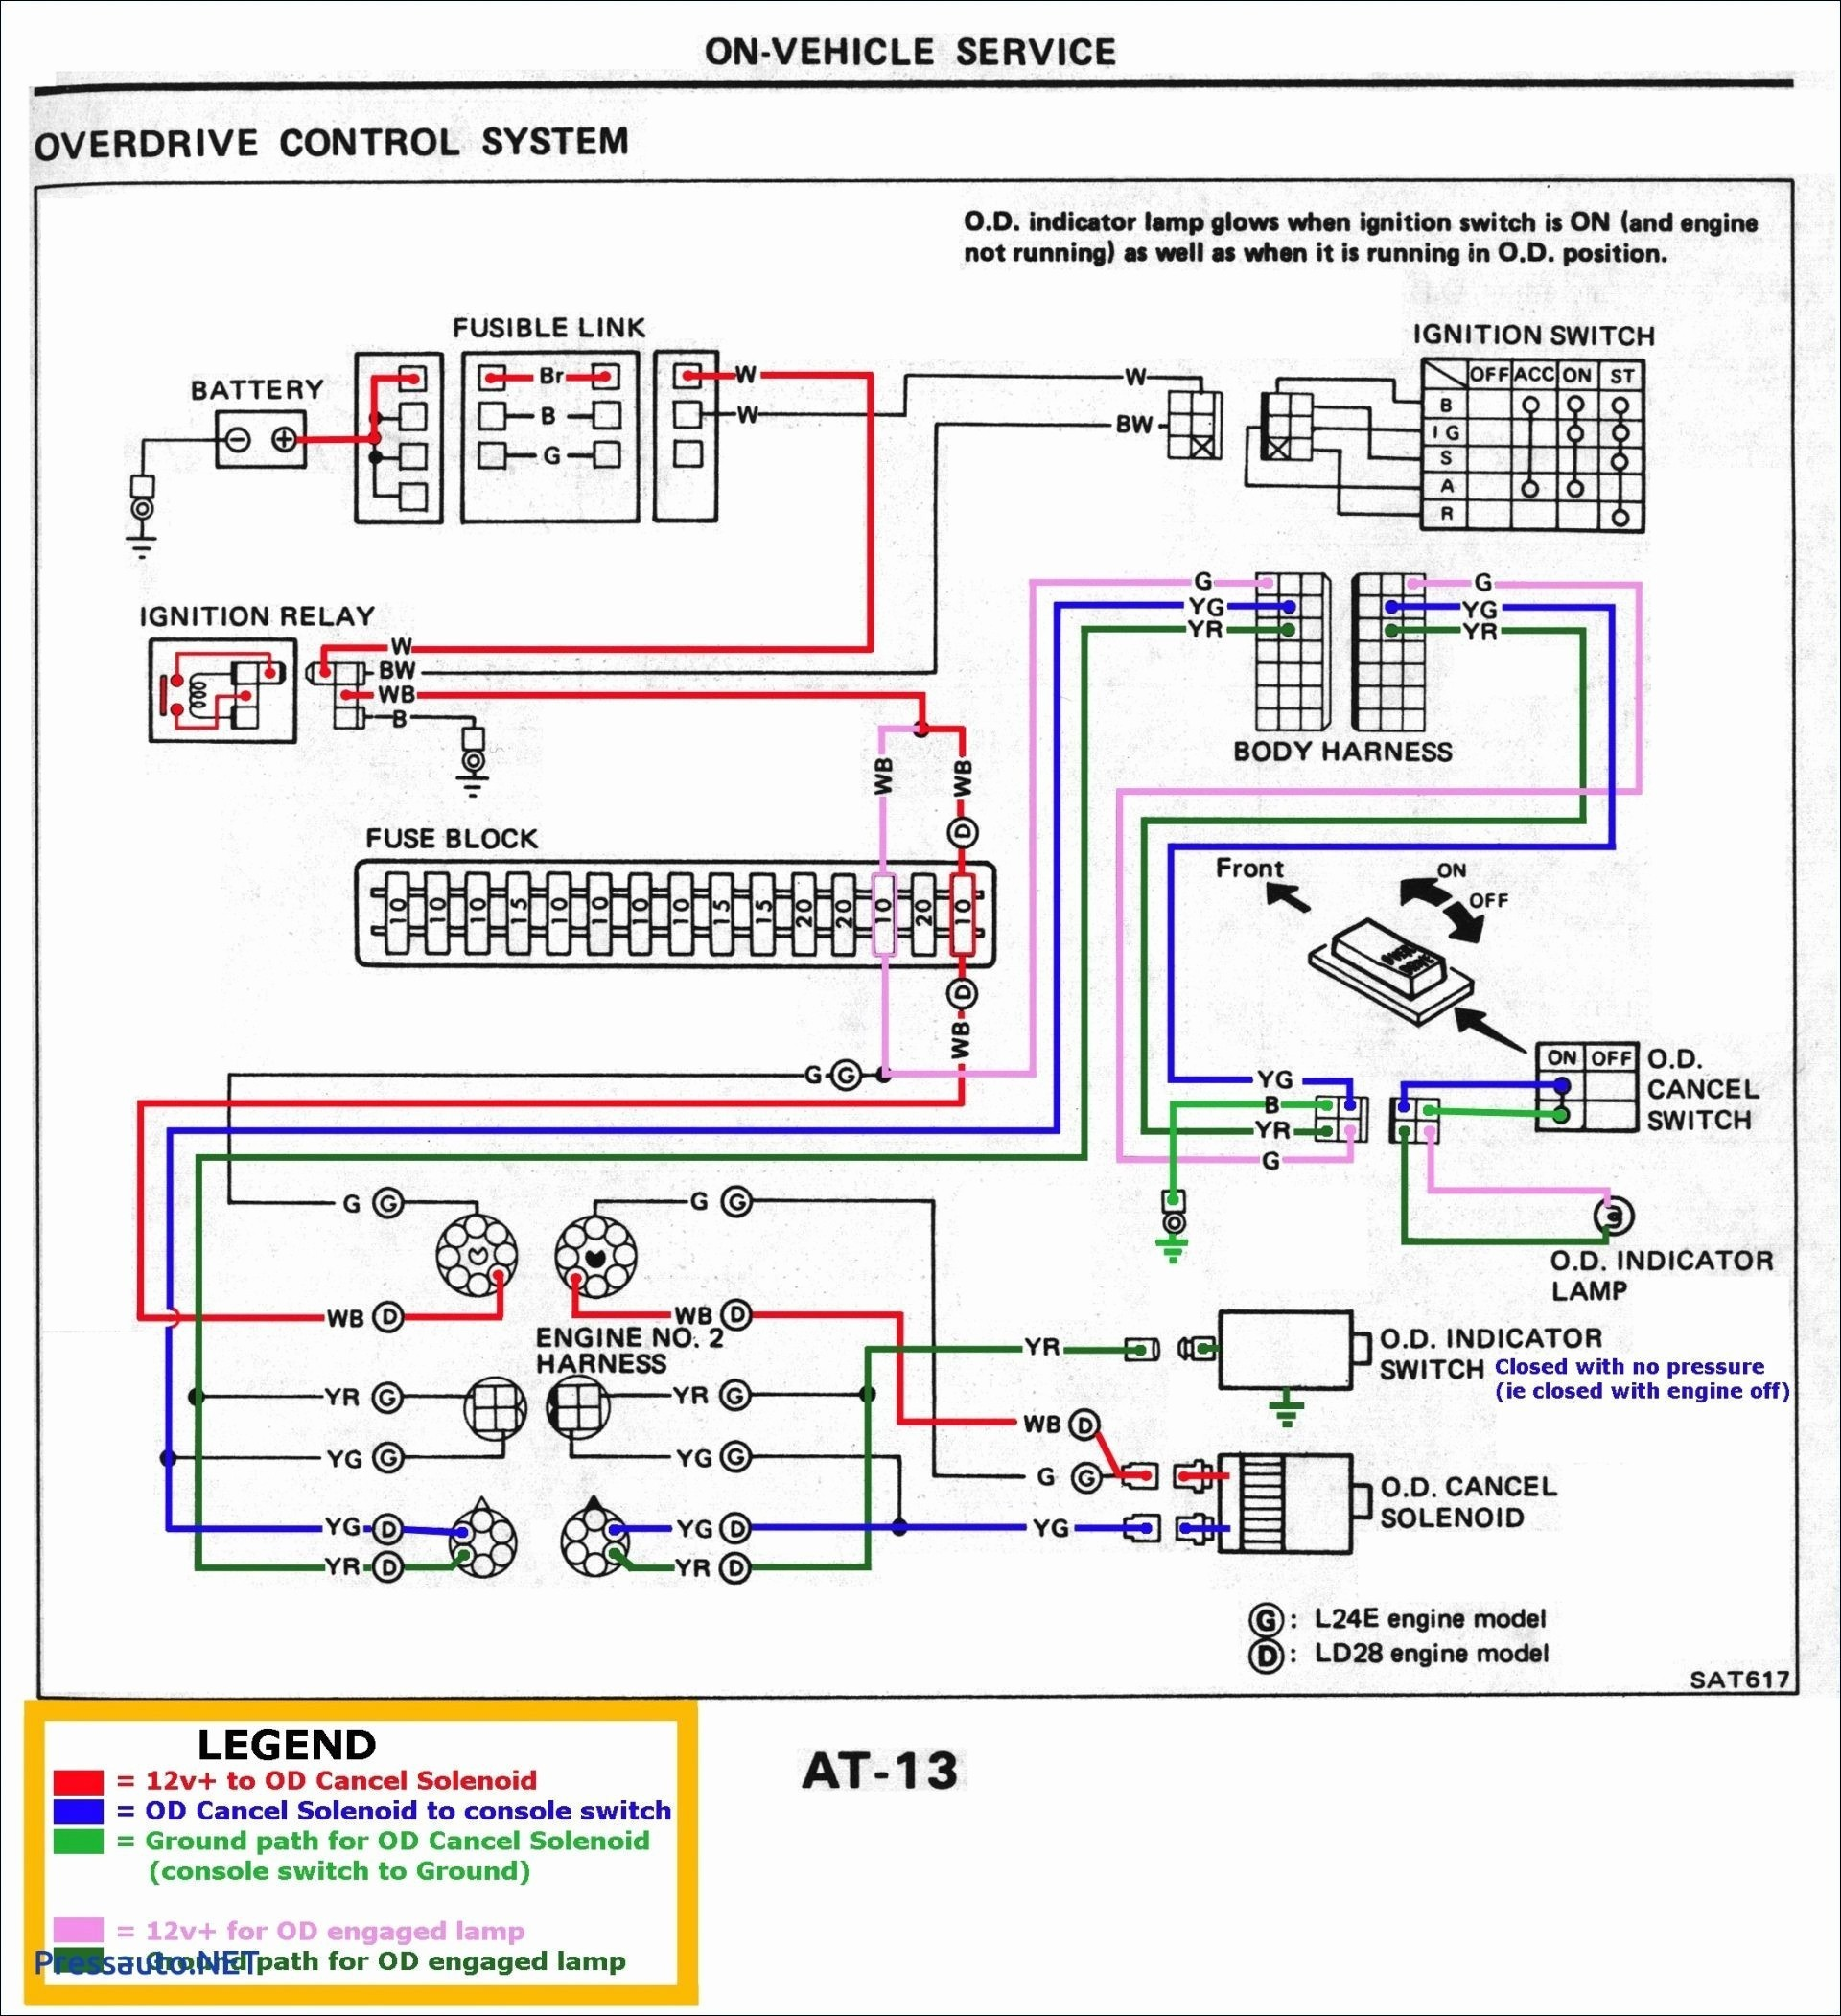 Wiring Diagram for Flasher Relay Best Relay Pinout Diagram • Electrical Outlet Symbol 2018 Of Wiring Diagram for Flasher Relay